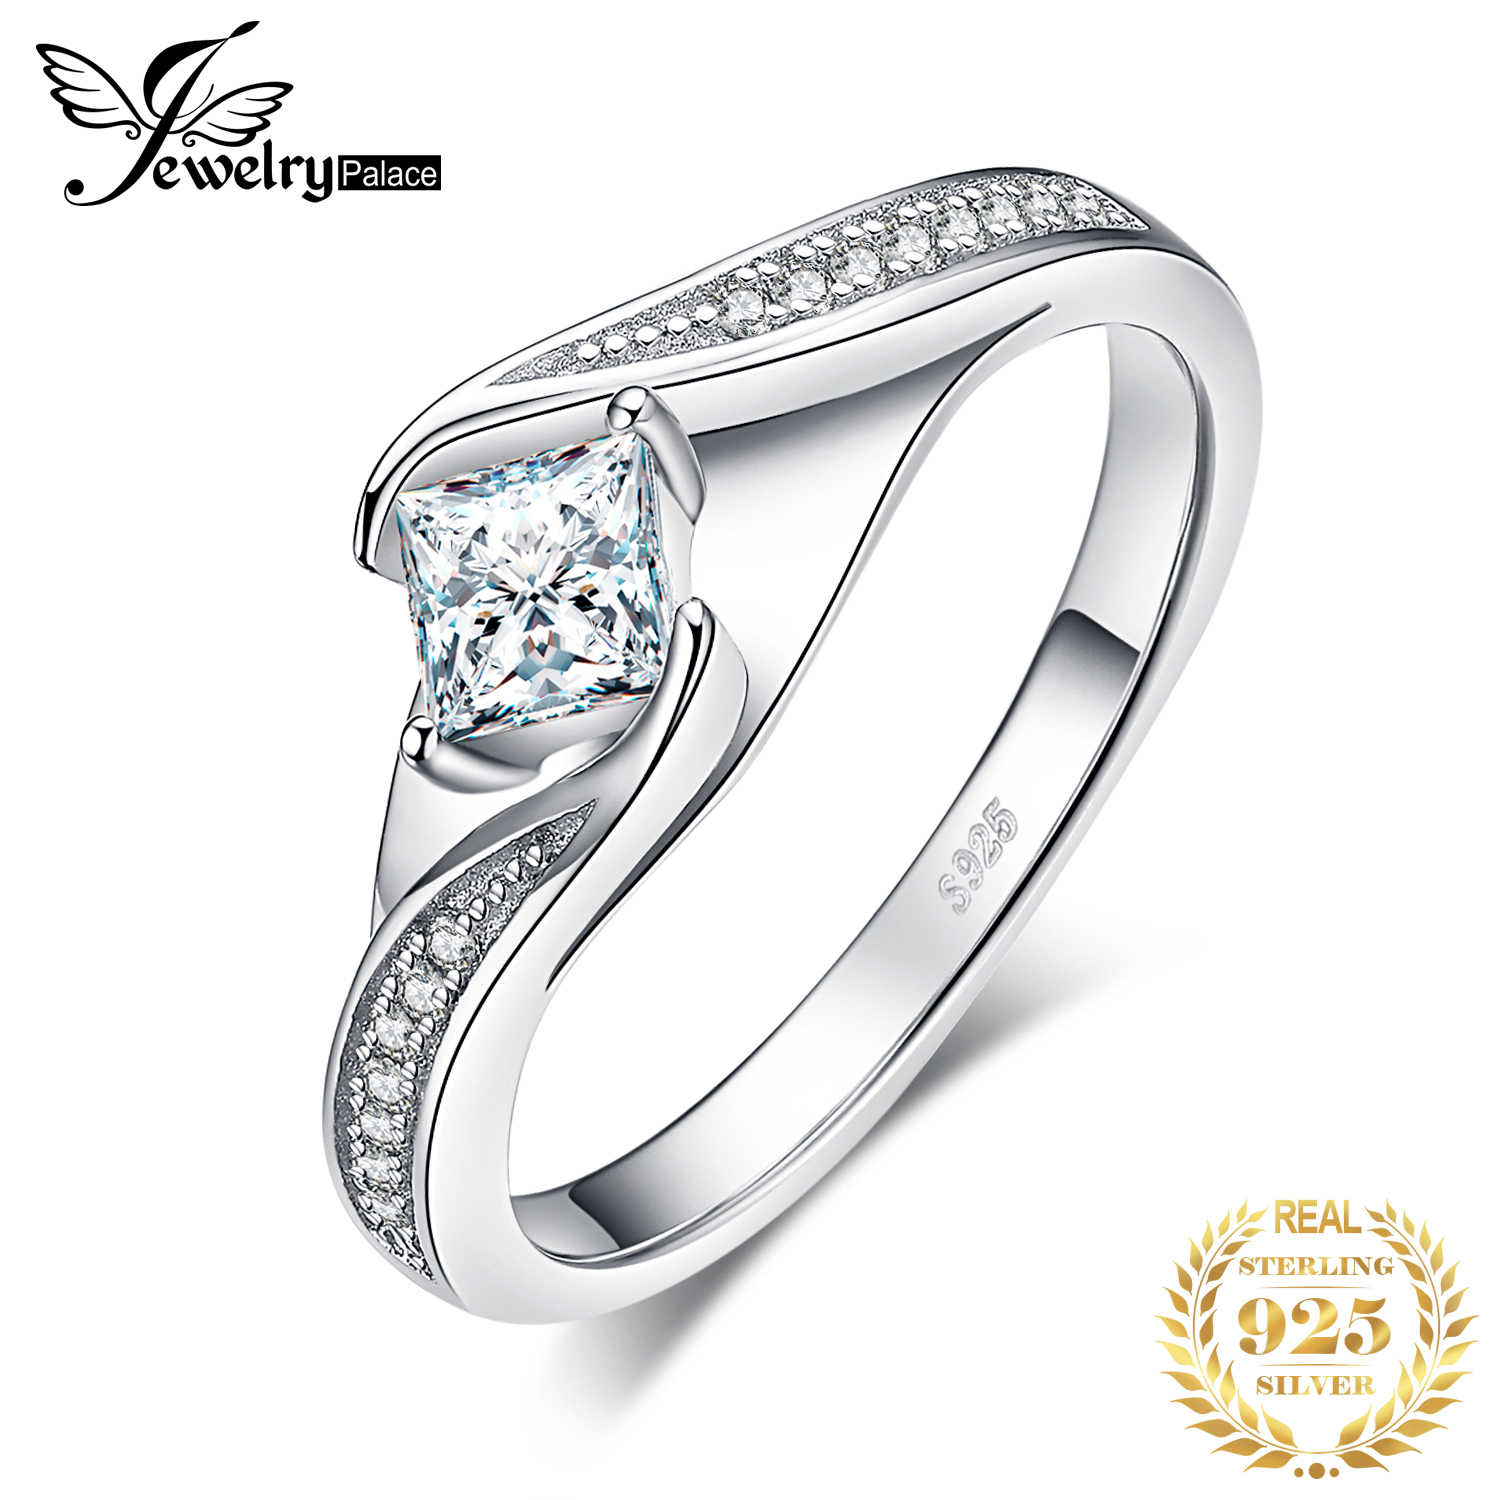 JewerlyPalace Princess Cut Cubic Zirconia Promise Rings 925 Sterling Silver Wedding Engagement Rings Anniversary Gifts for Women